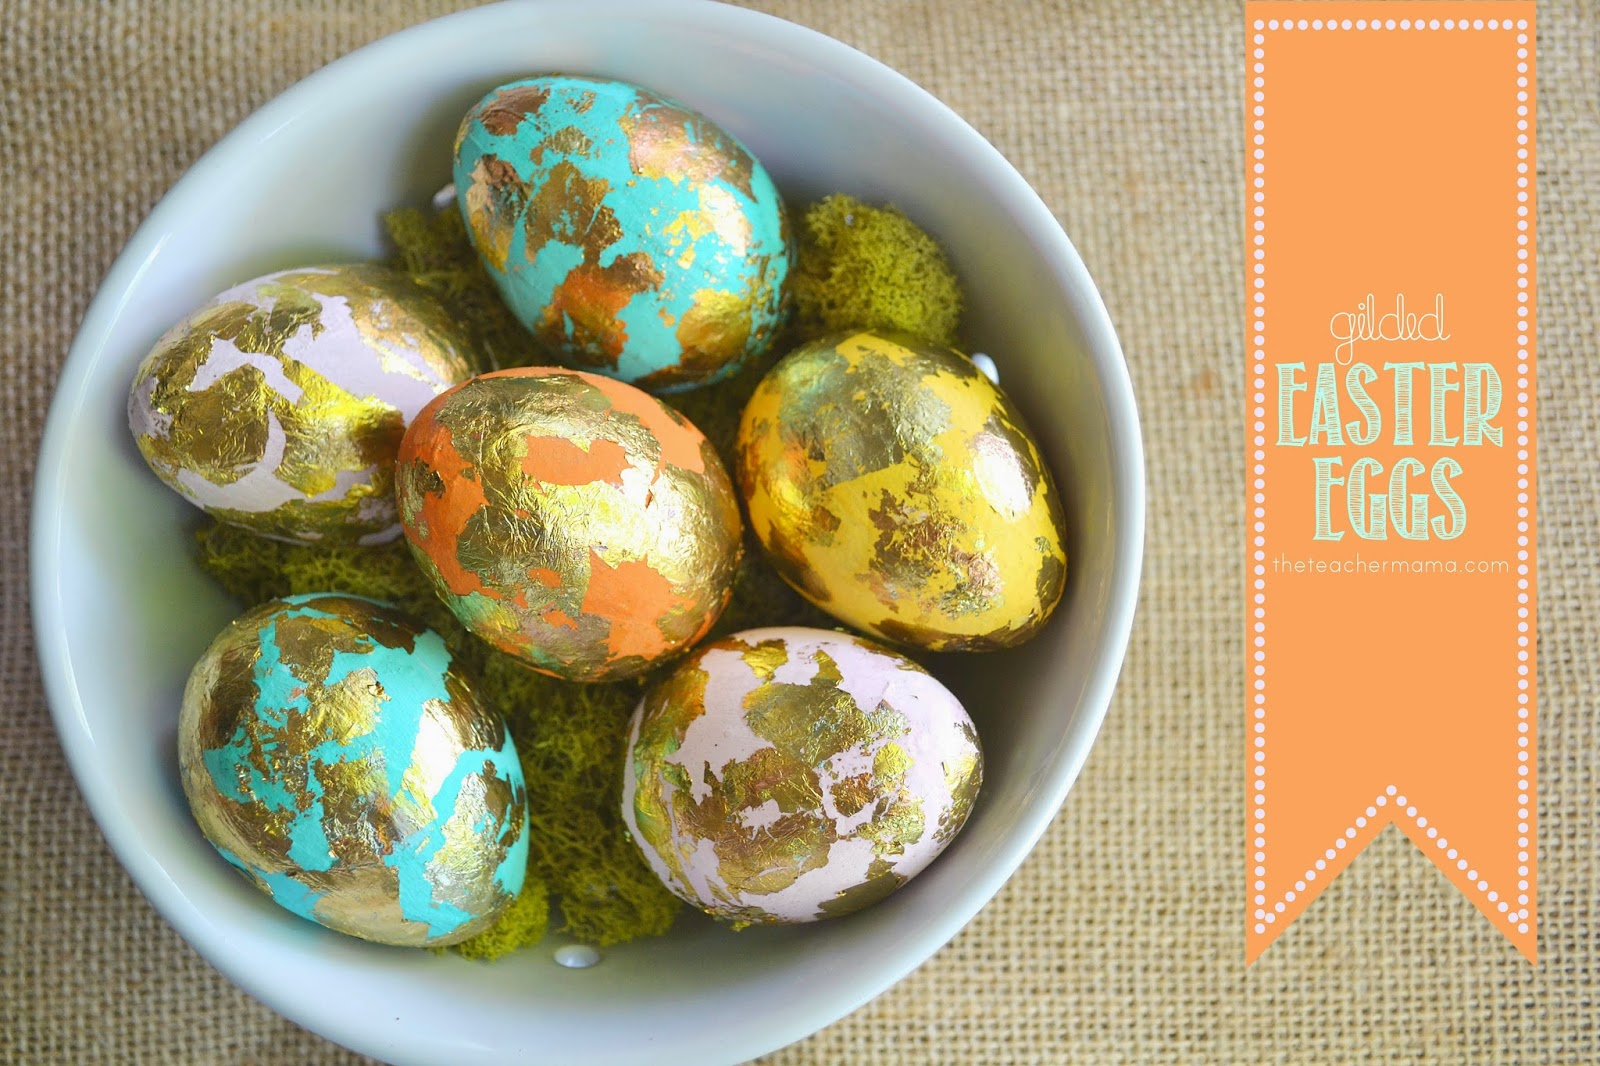 Gold gilded Easter eggs in a white bowl.